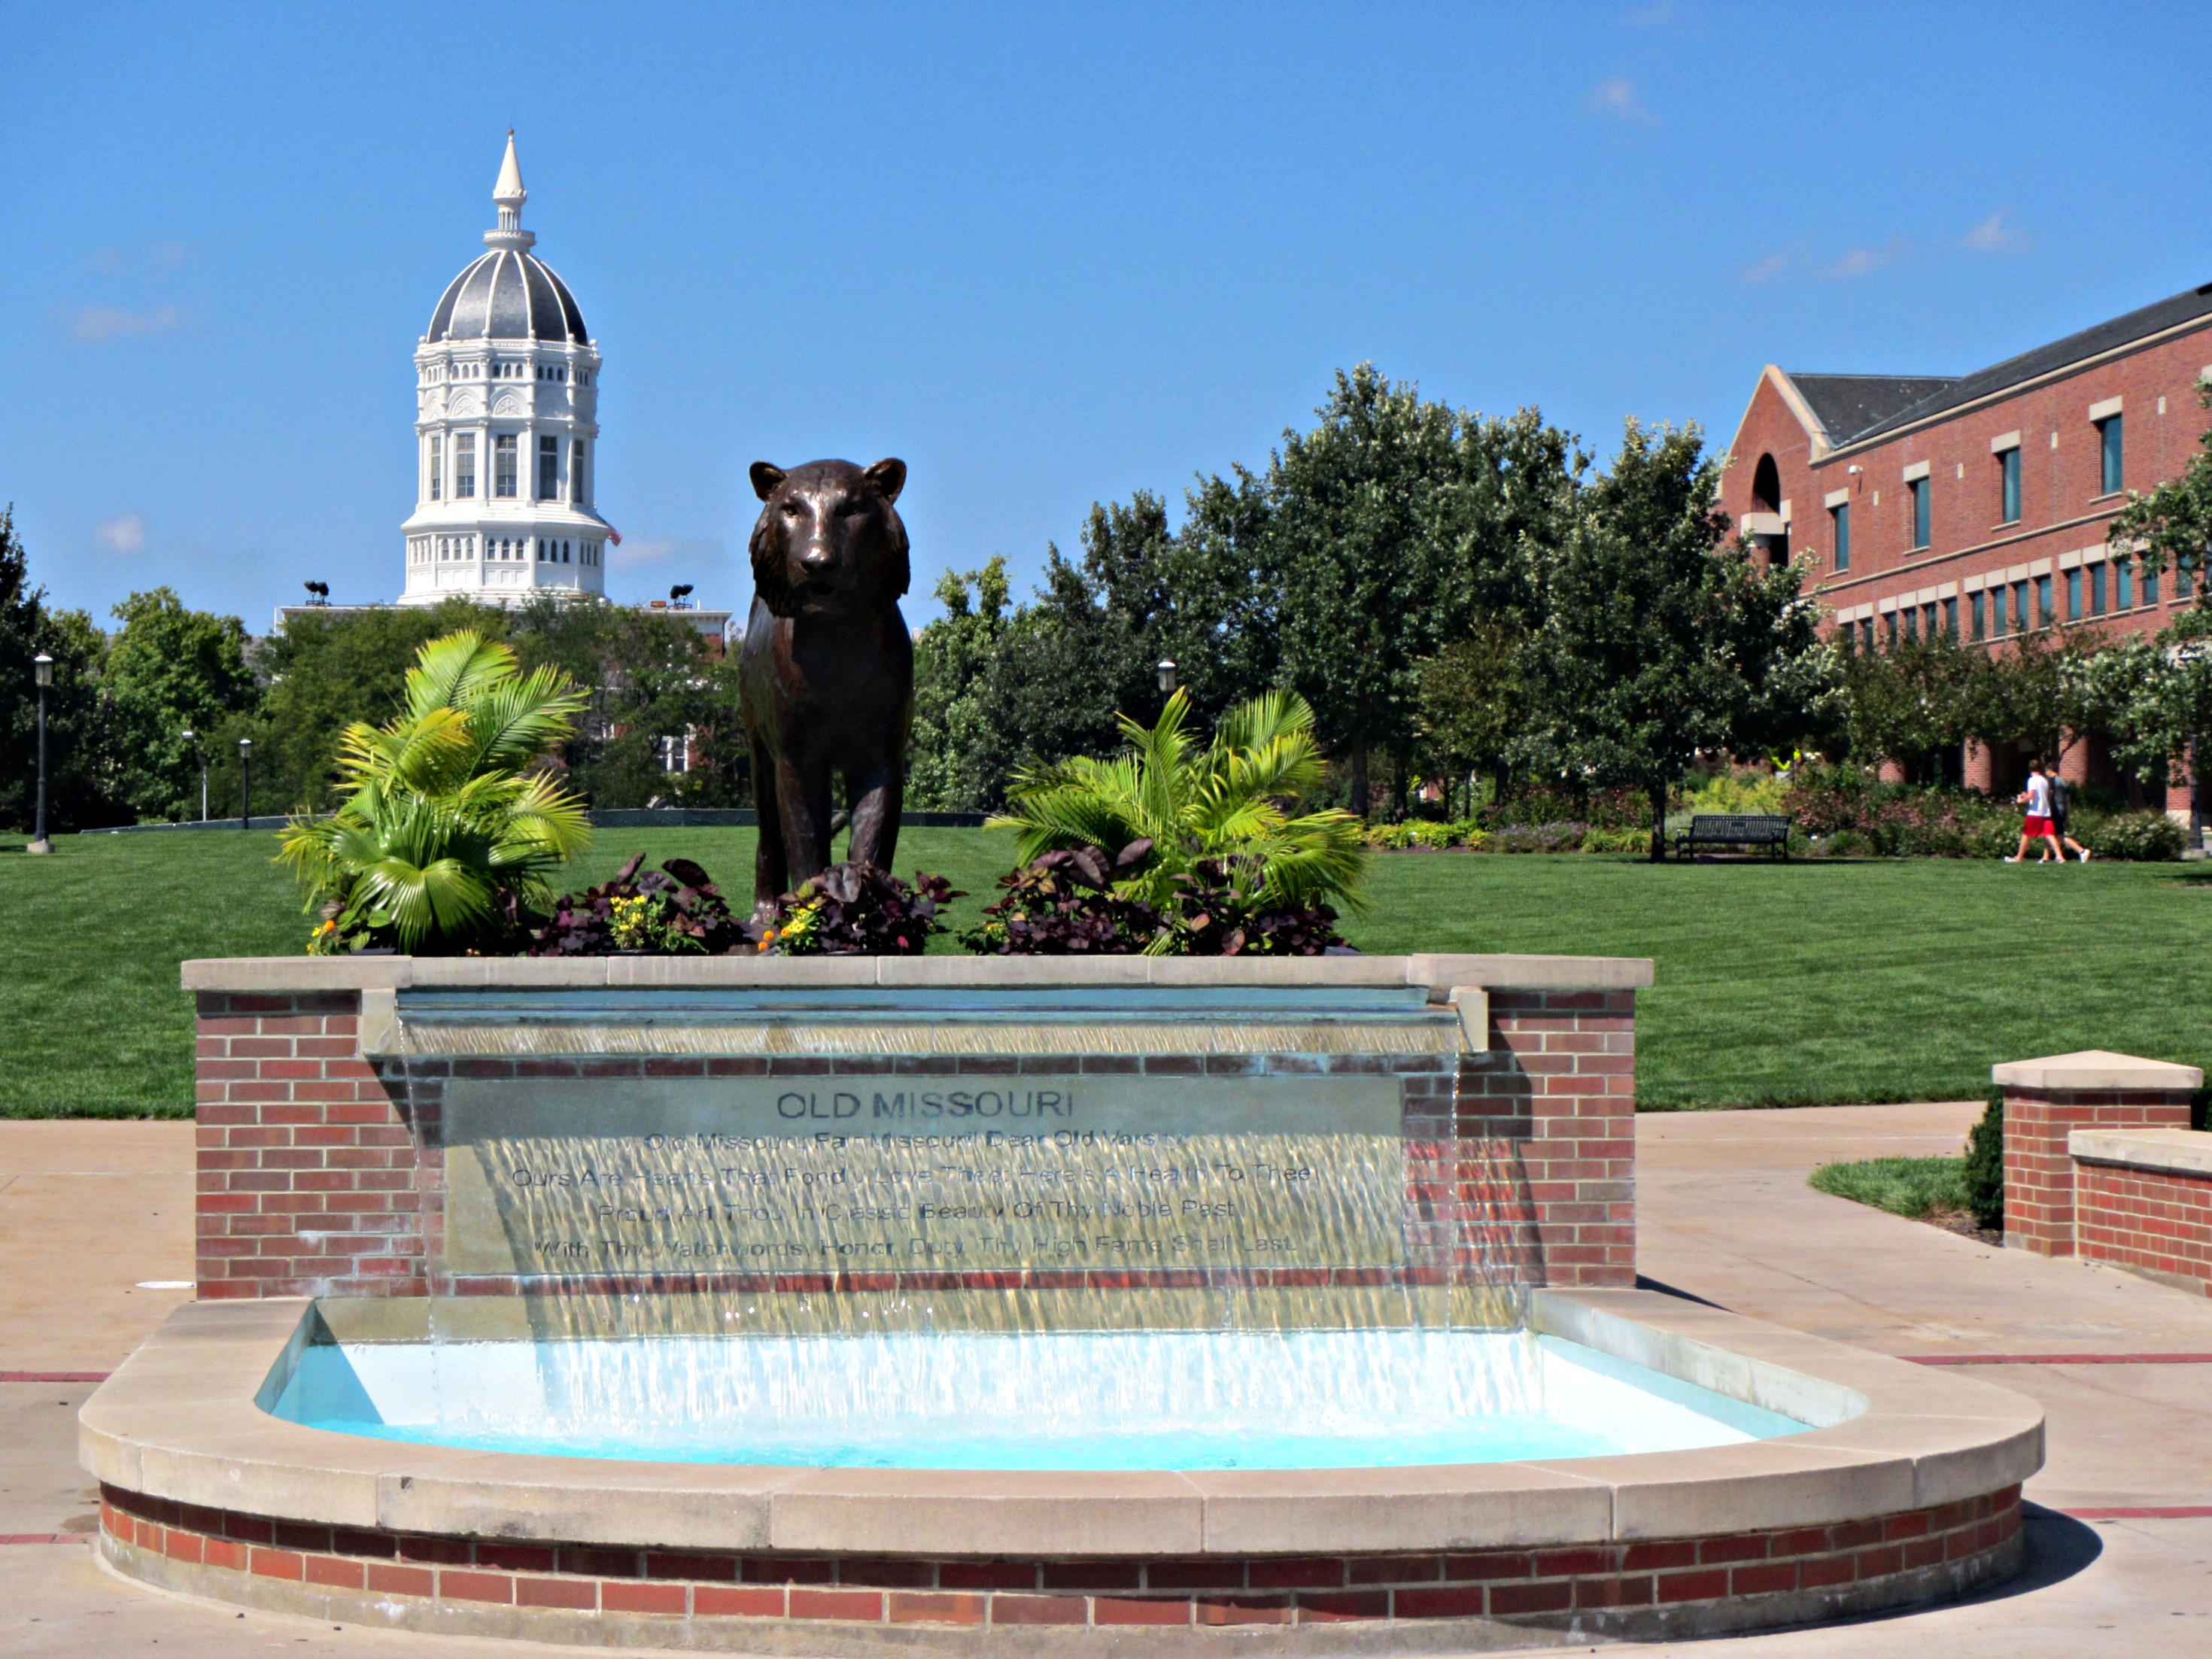 The University of Missouri campus as seen in 2014. (CameliaTWU/Flickr creative commons) https://creativecommons.org/licenses/by-nc-nd/2.0/